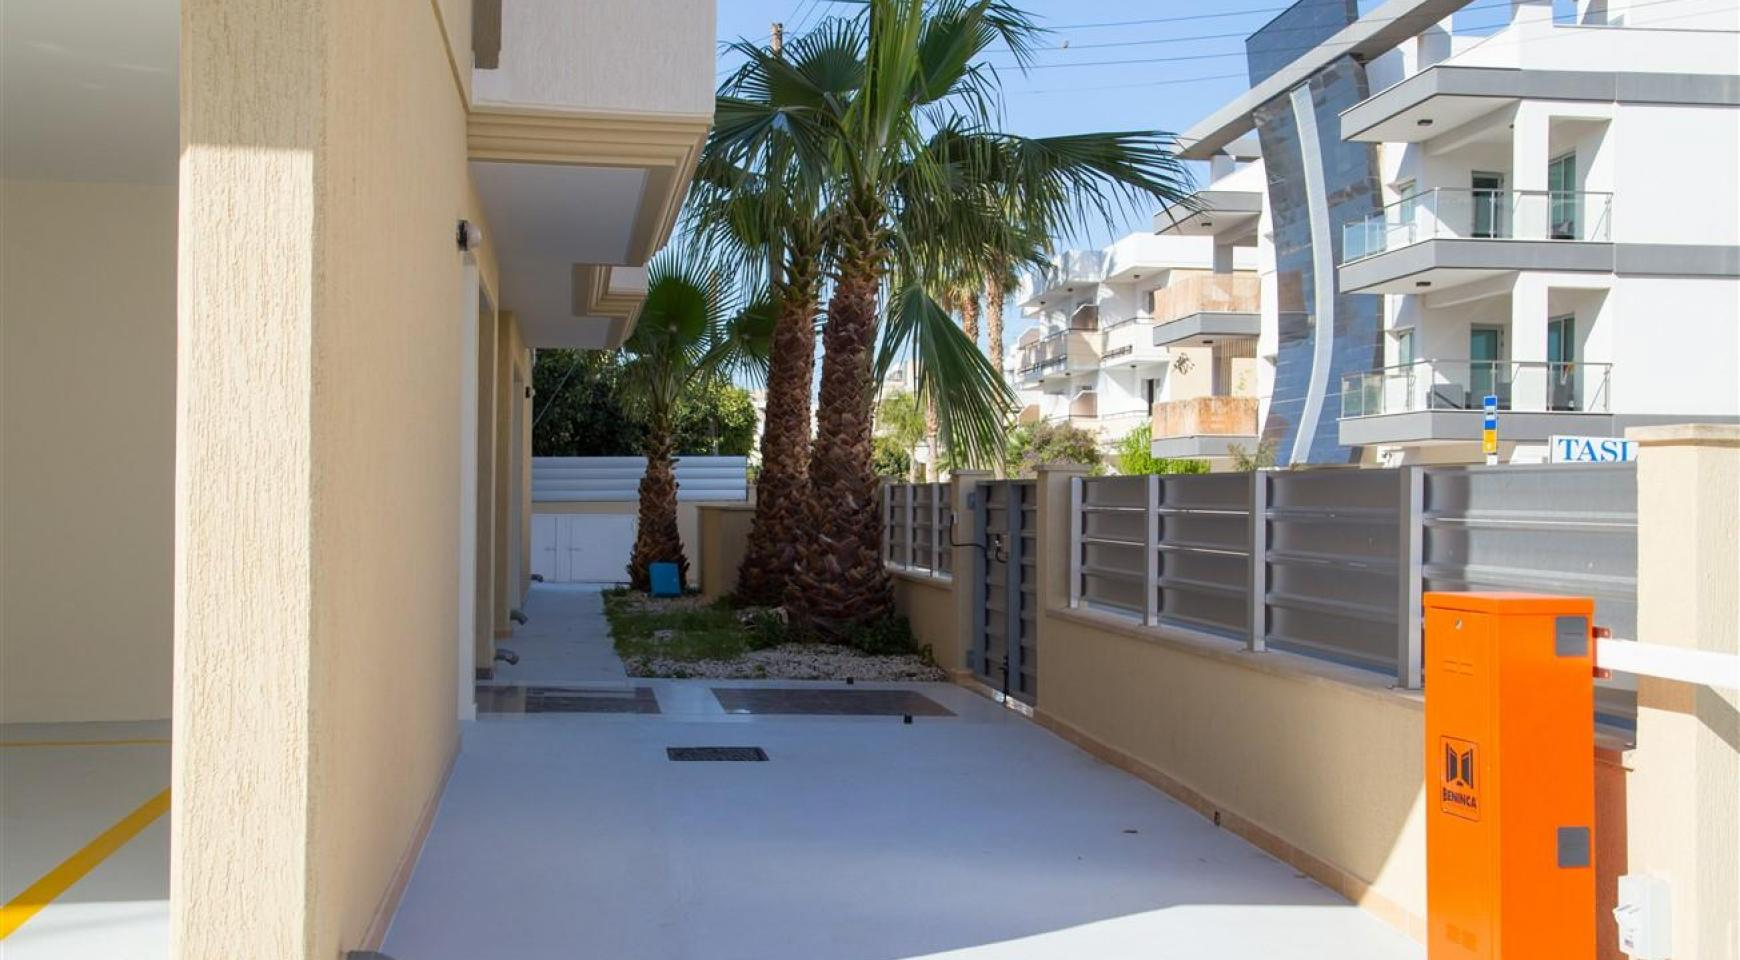 Luxury One Bedroom Apartment Frida 103 in the Tourist Area - 13